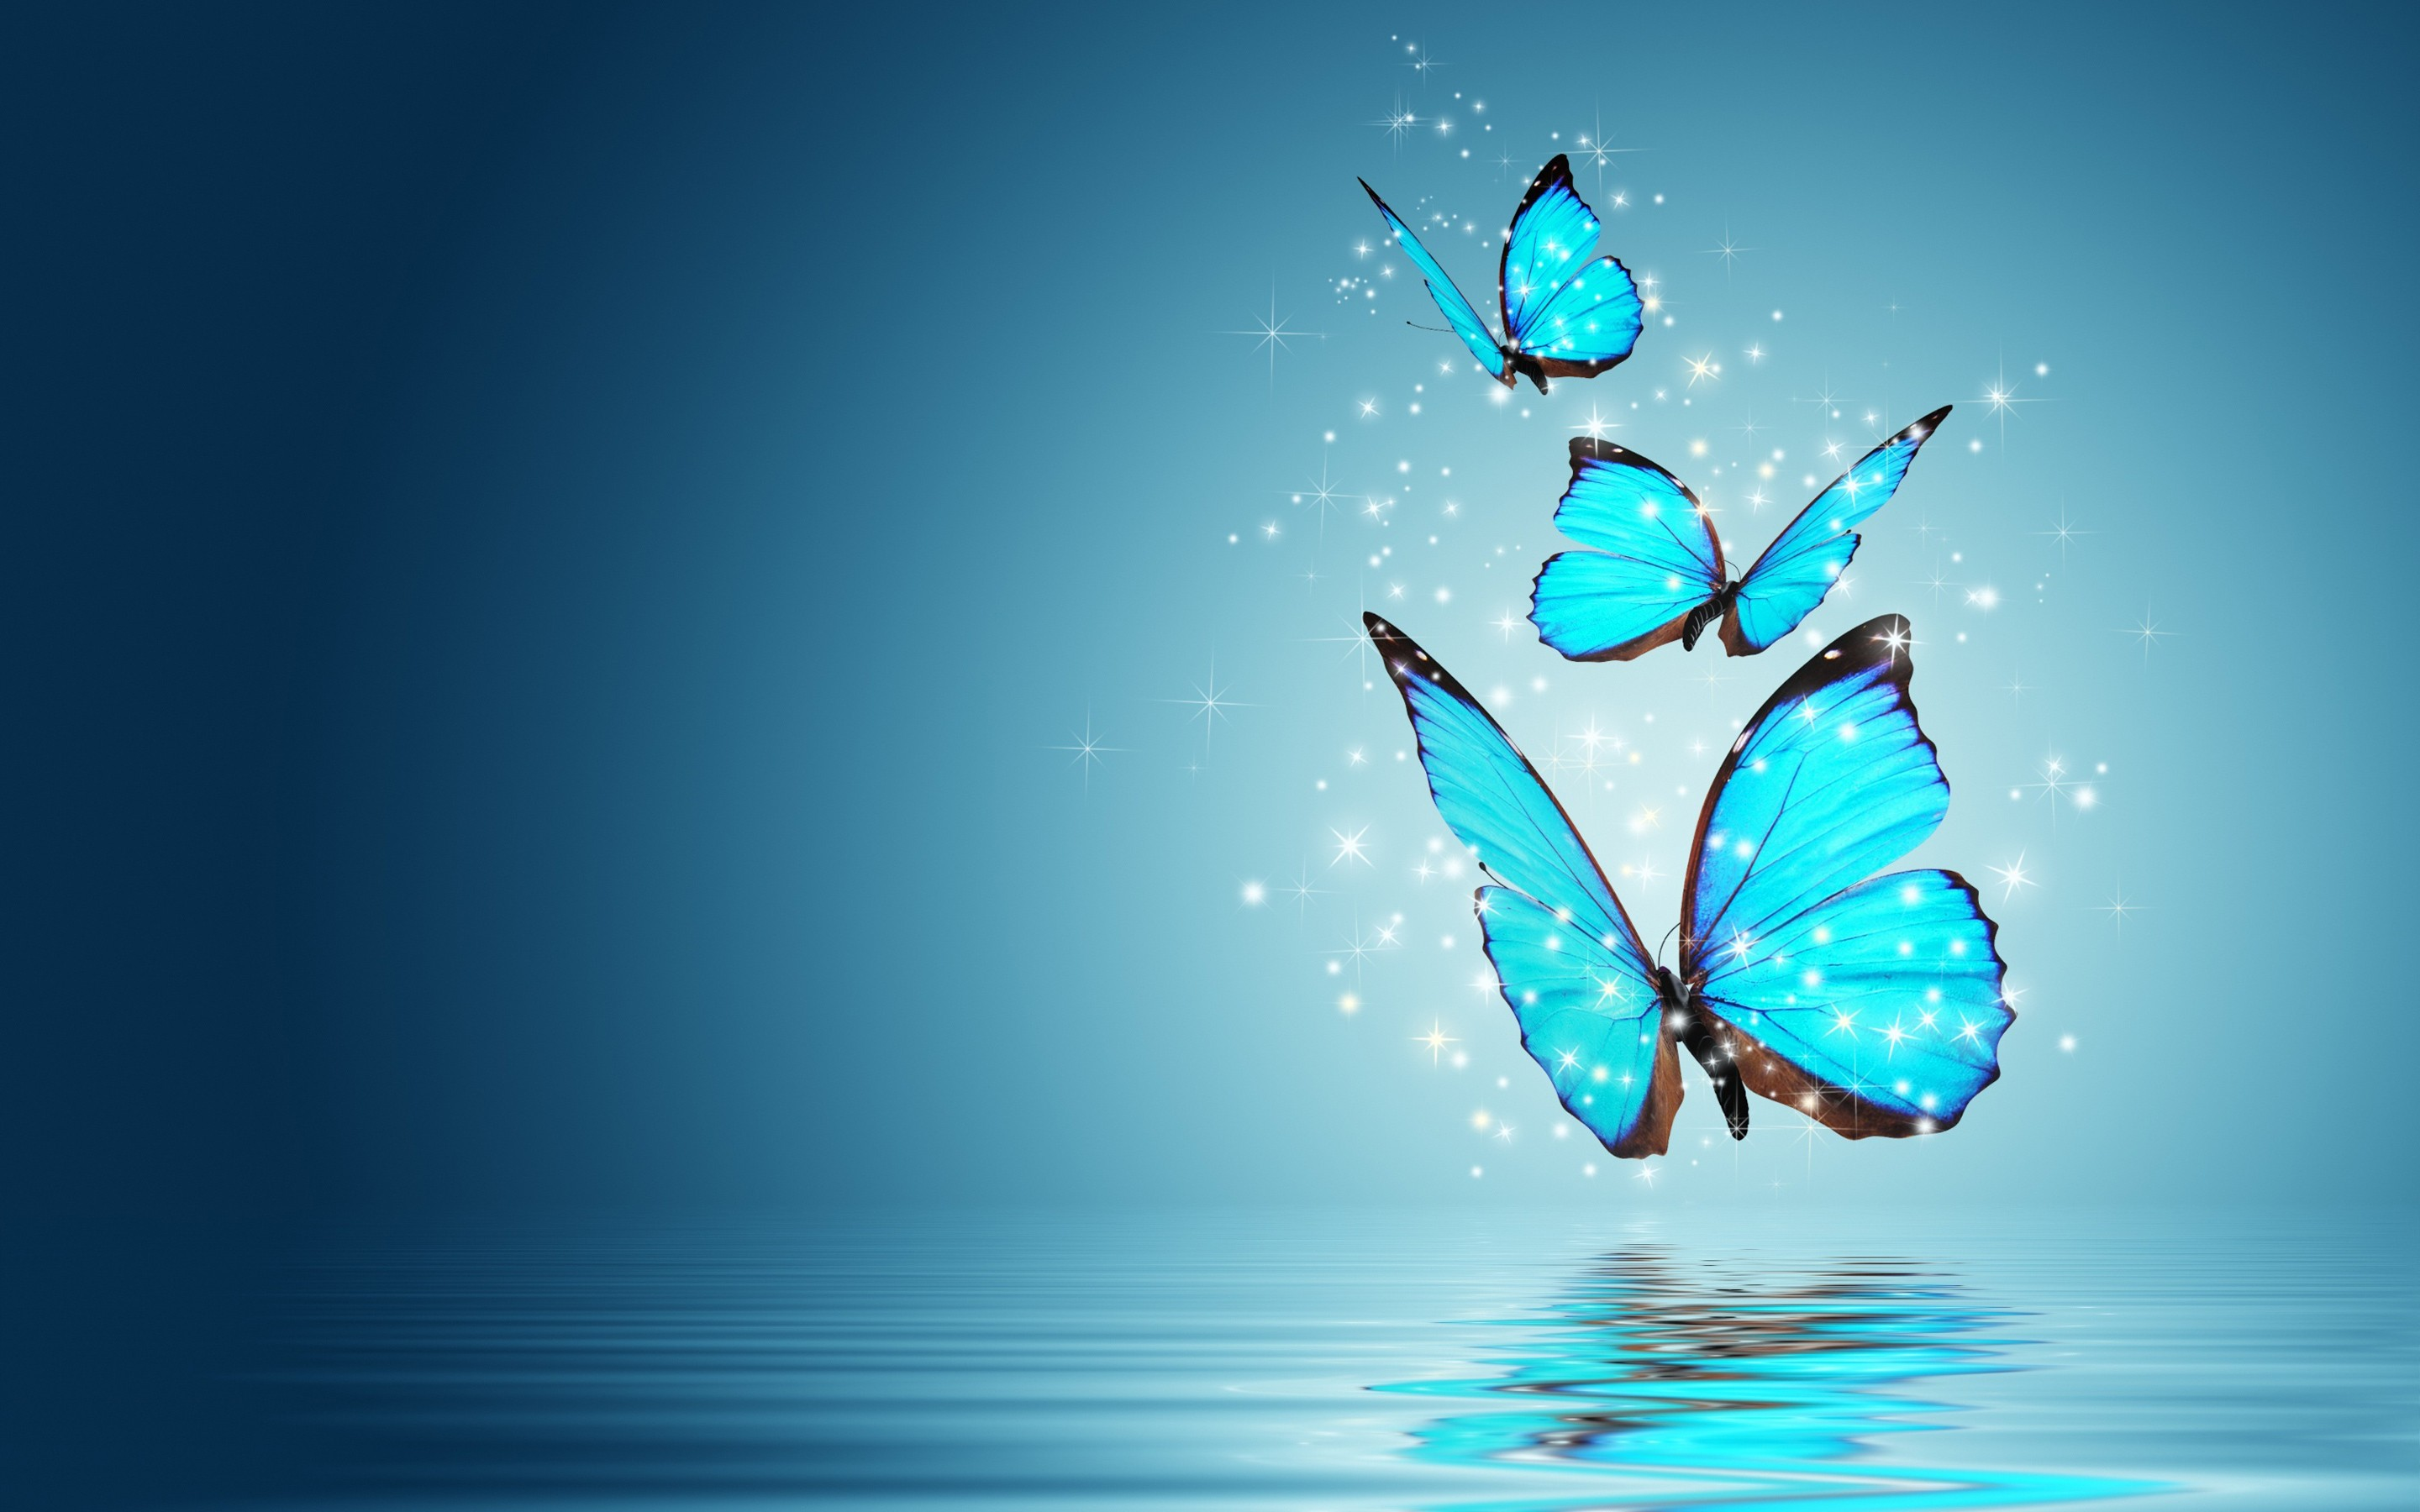 Free Wallpaper For Your Desktop And Ipad: Teal Wallpaper ·① Download Free Backgrounds For Desktop